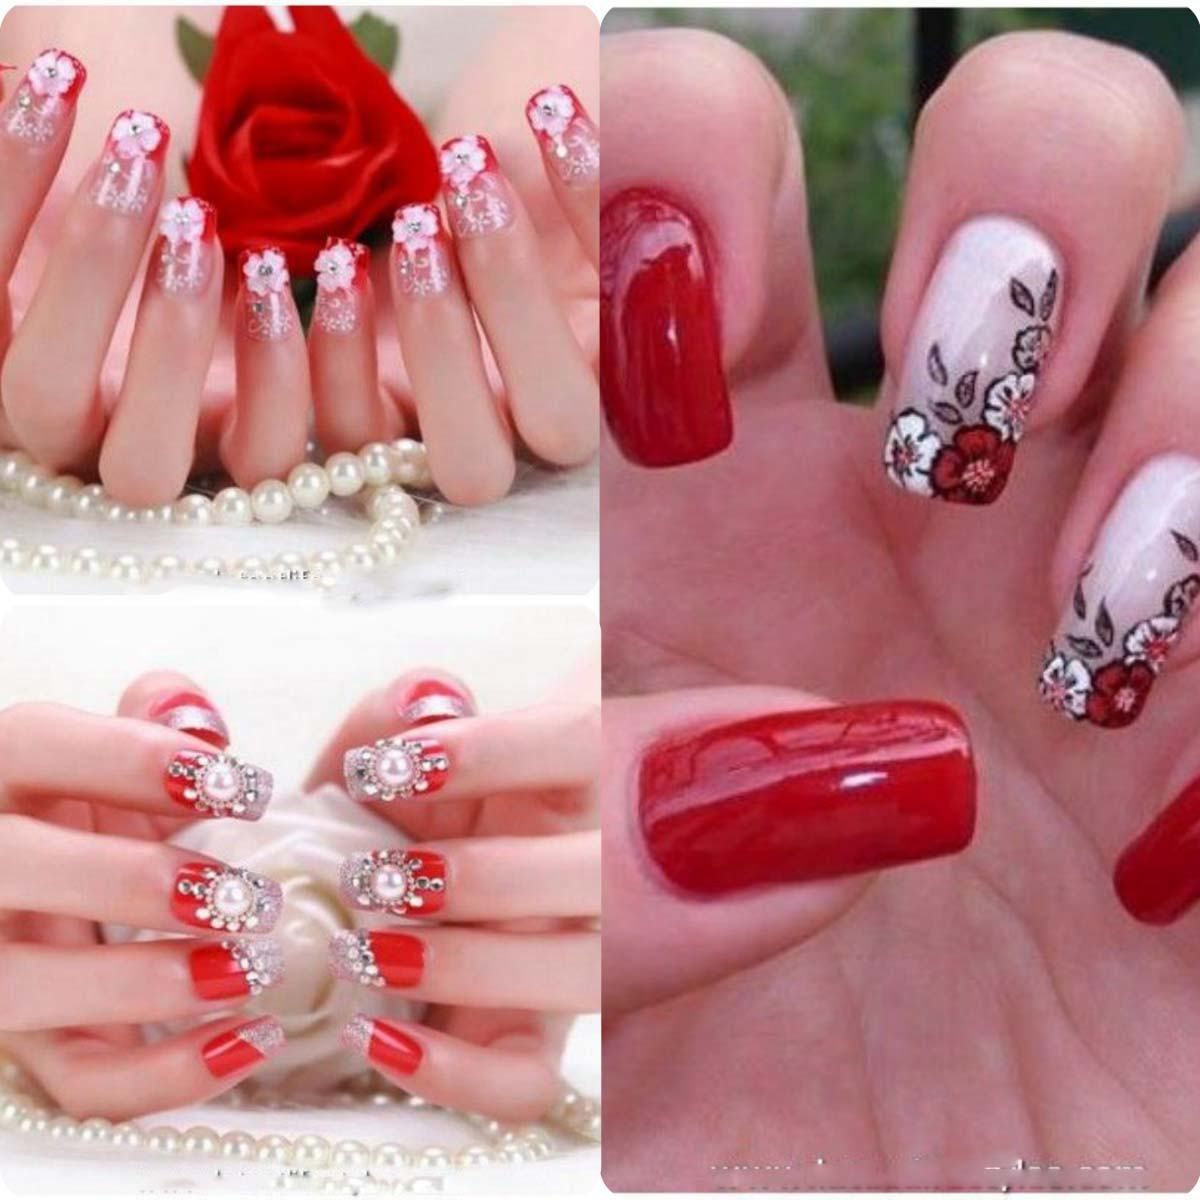 Best Bridal Nail Art Ideas For Wedding Brides 2016-2017 (18)